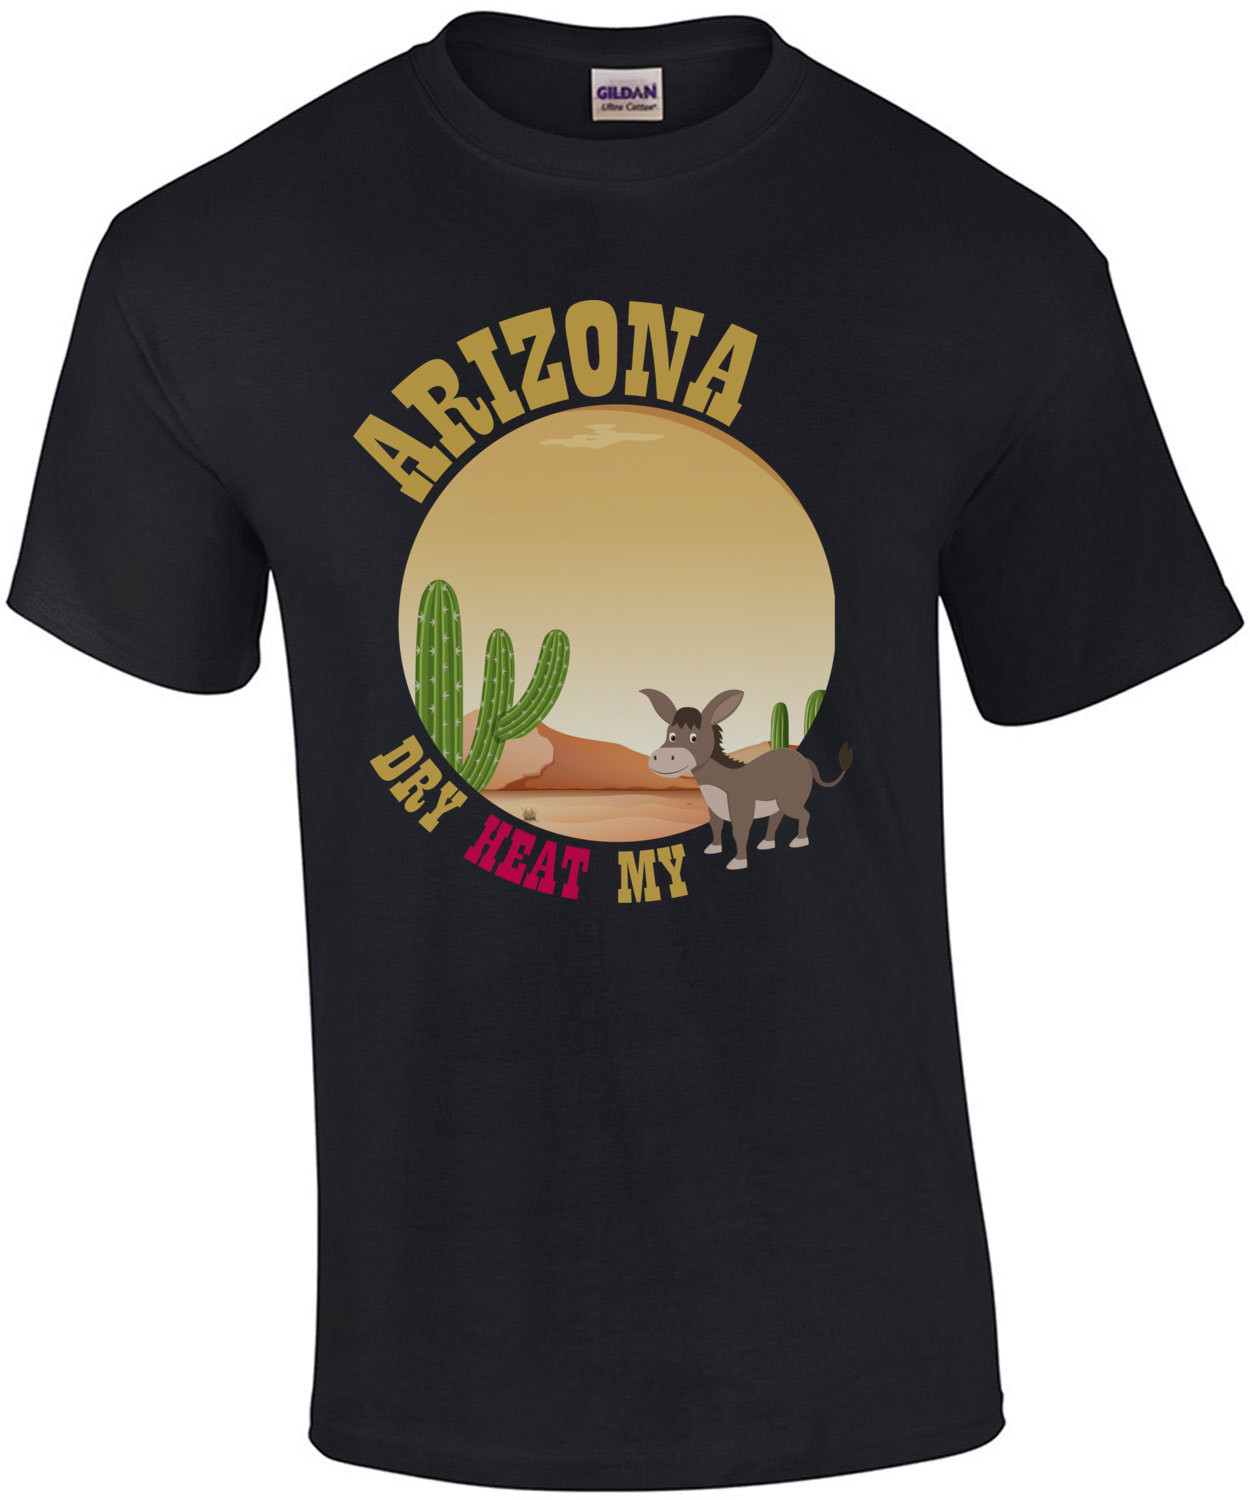 Arizona Dry Heat My Ass - Arizona T-Shirt